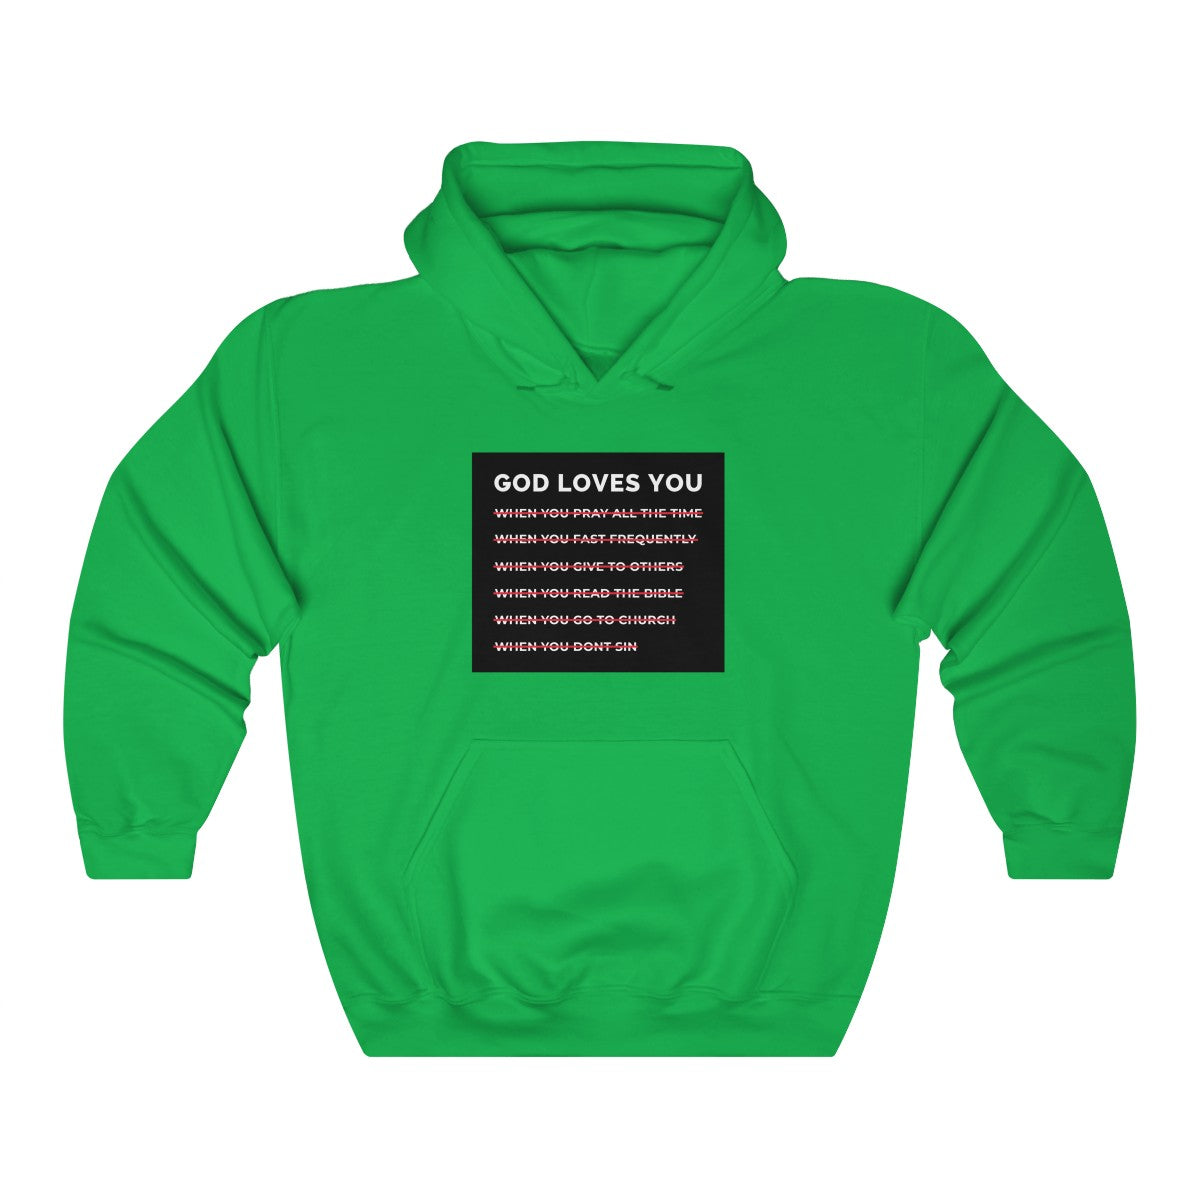 God Loves You Unisex Heavy Blend™ Hooded Sweatshirt